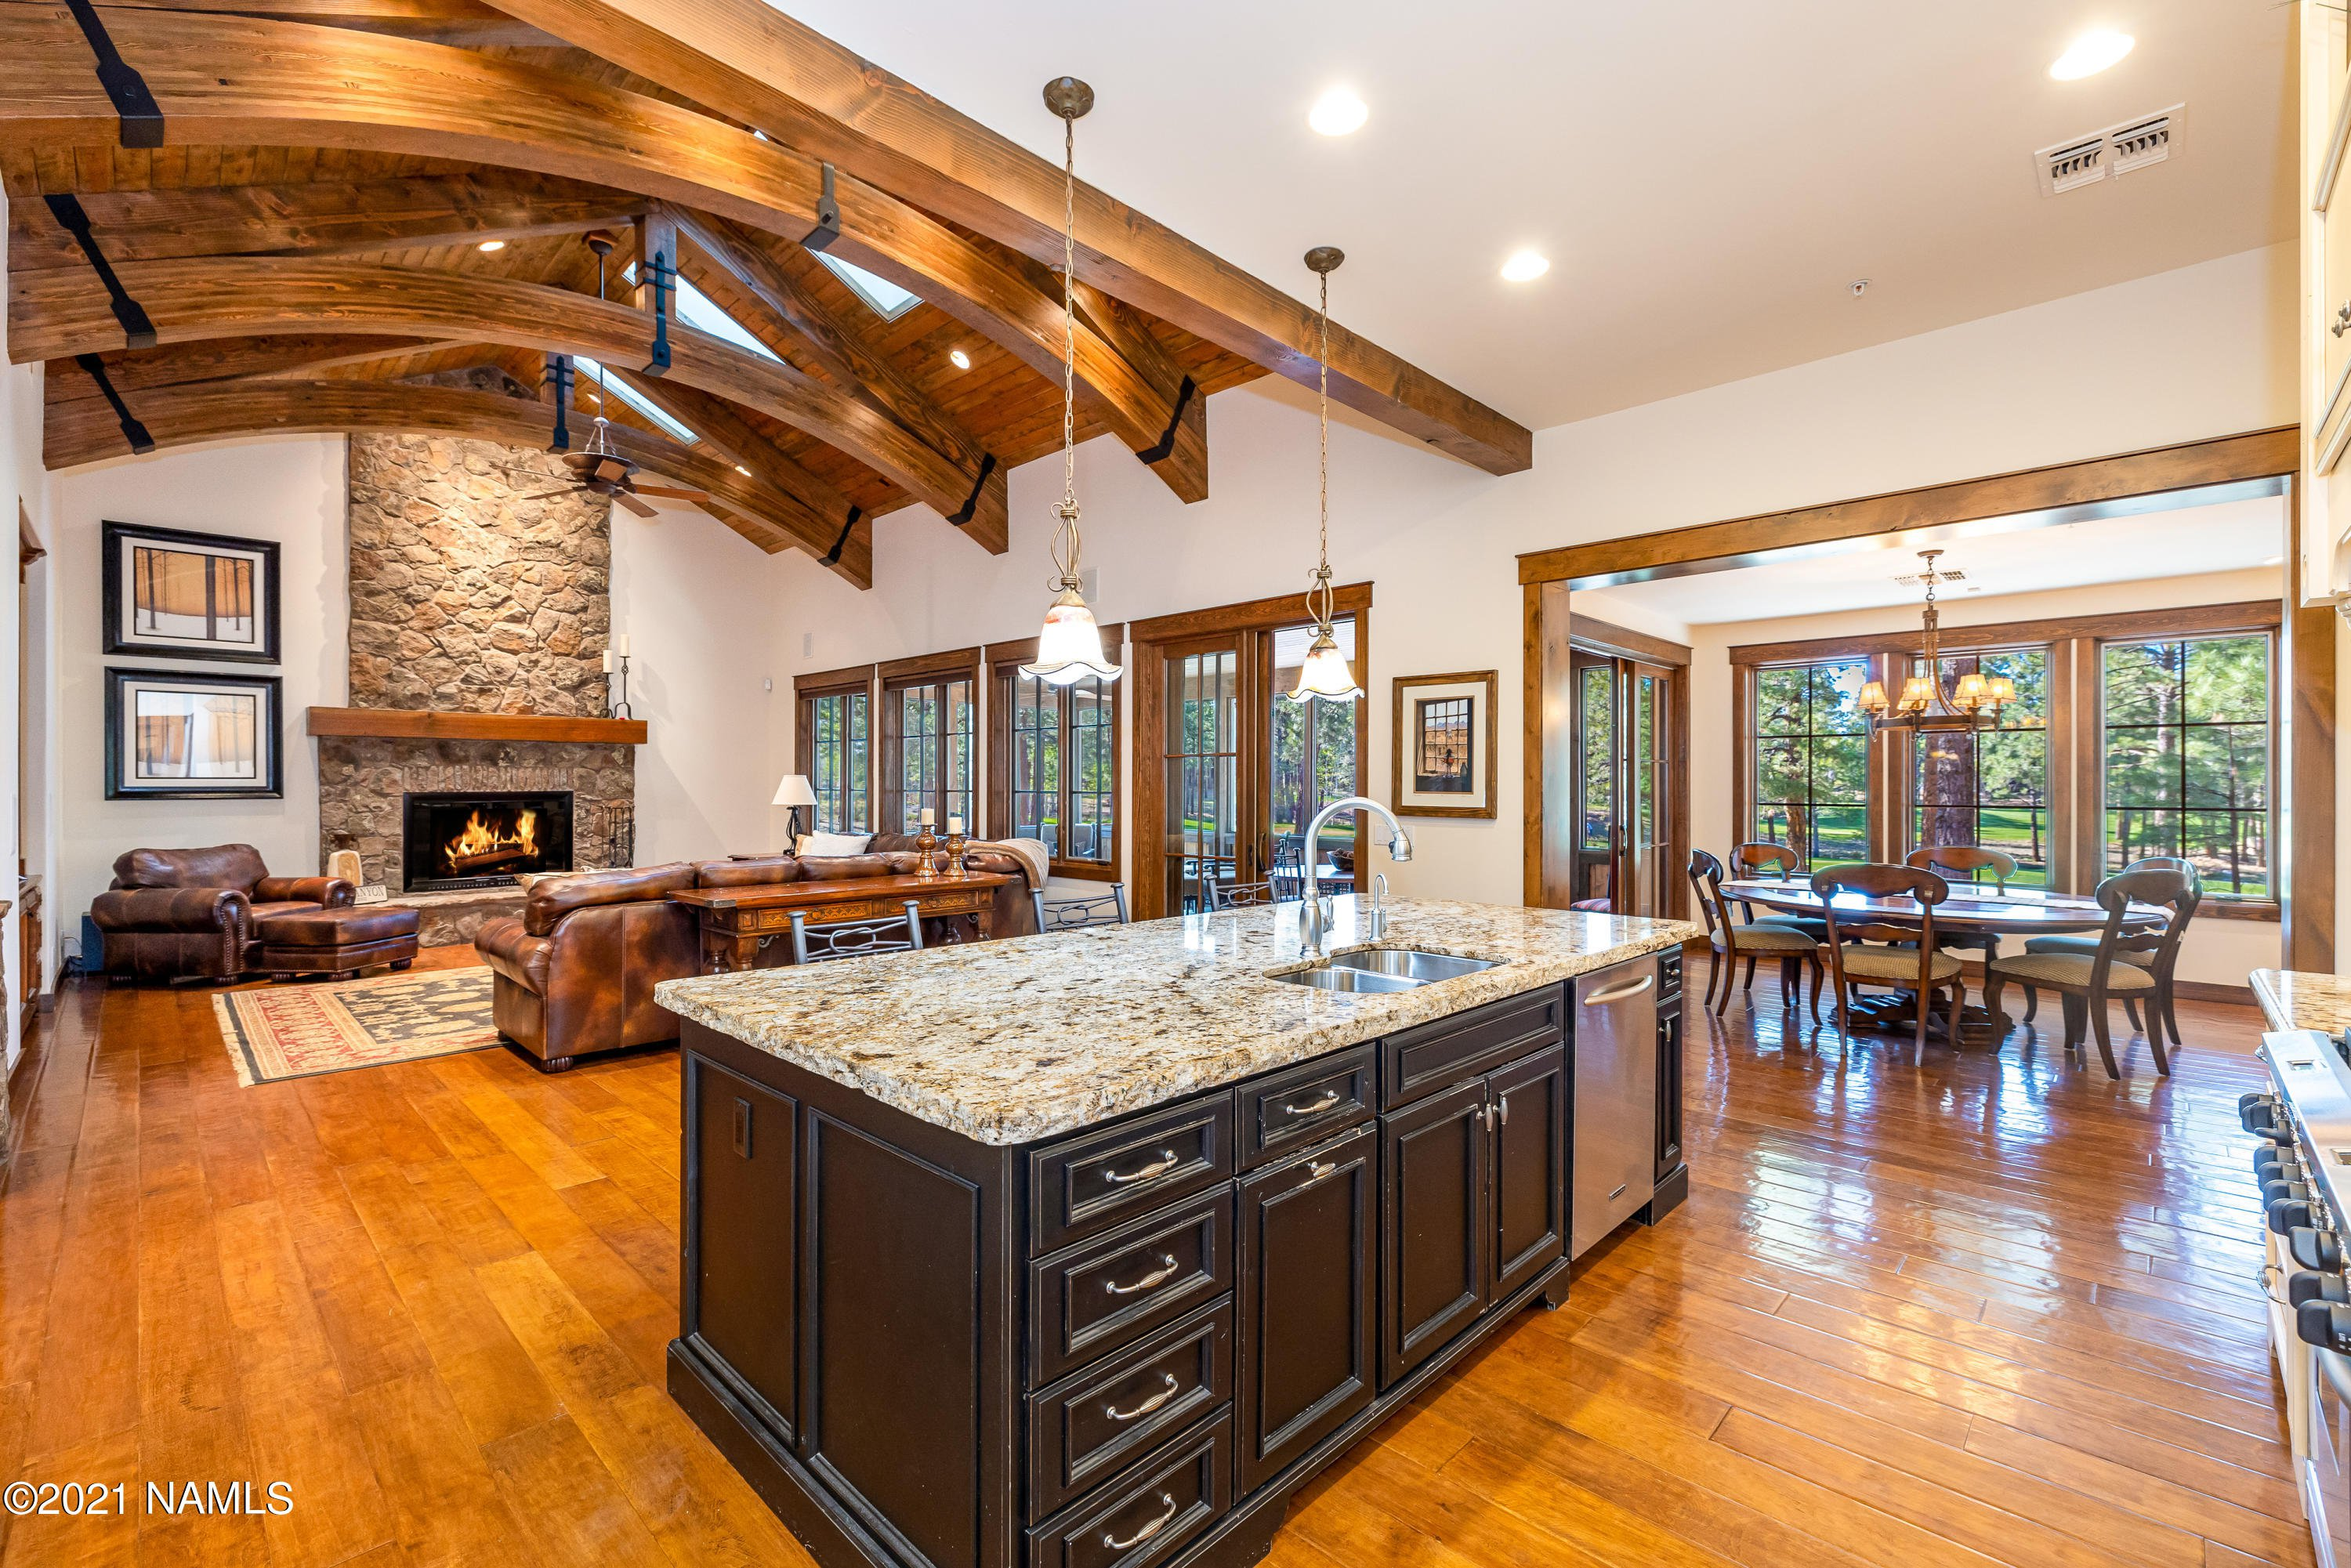 FLAGSTAFF'S PRICIEST HOMES SOLD in May 2021